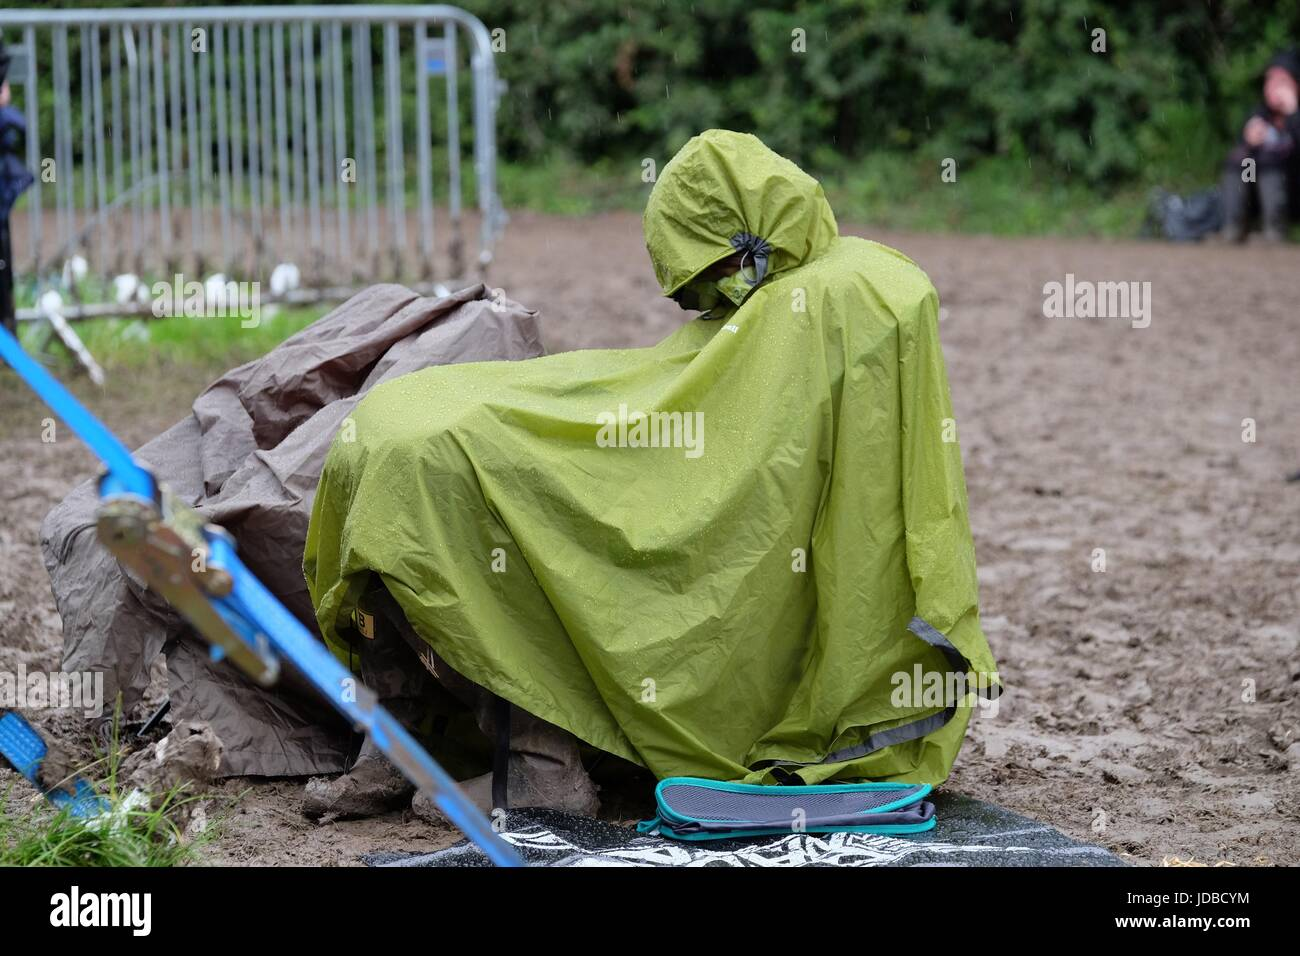 Festival goer sitting in a rain poncho and wellies at a muddy music festival - Stock Image